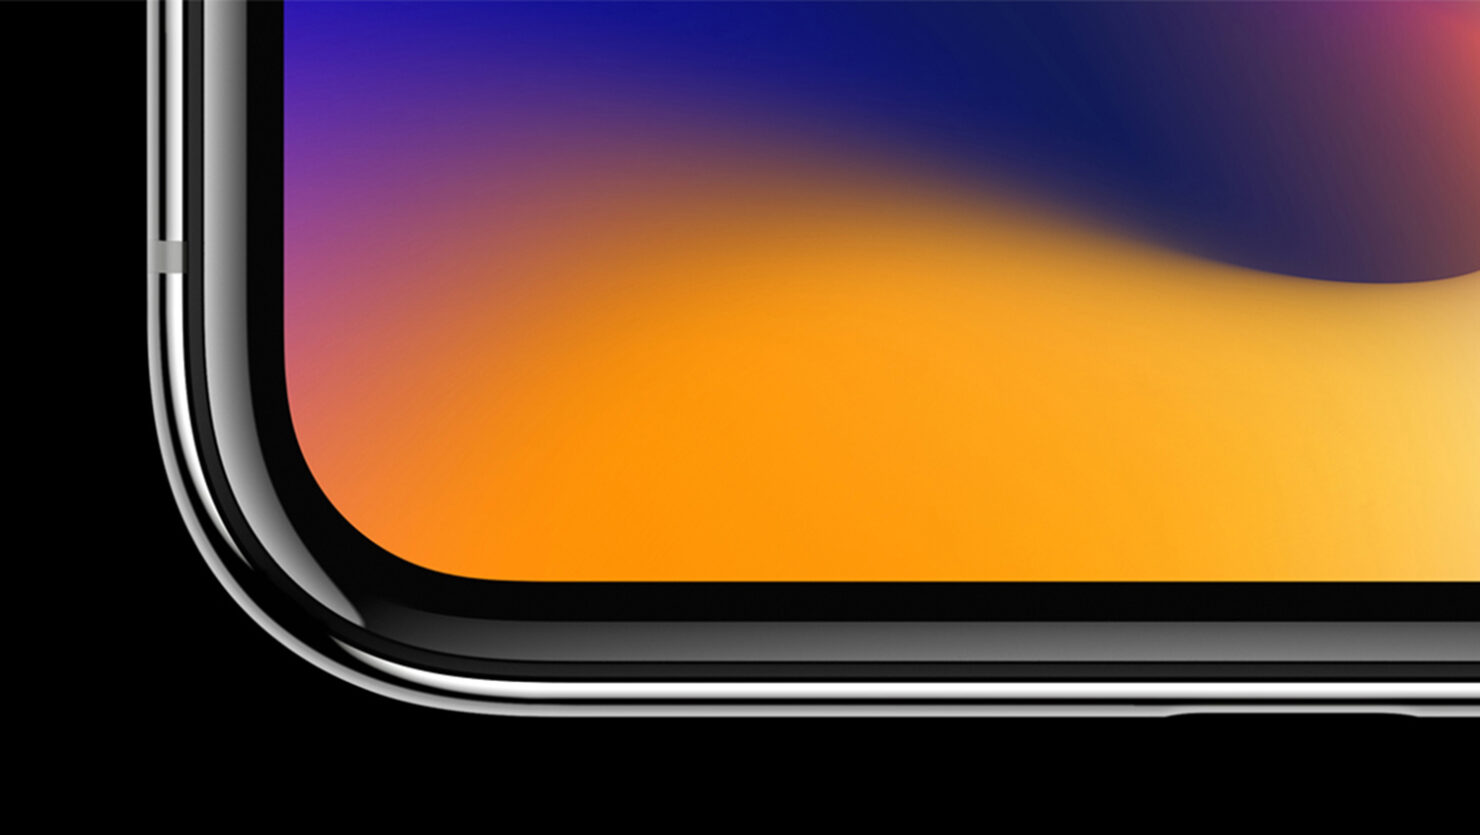 2020 iPhone Design Might Include New iPhone 4-Like Metal Frame